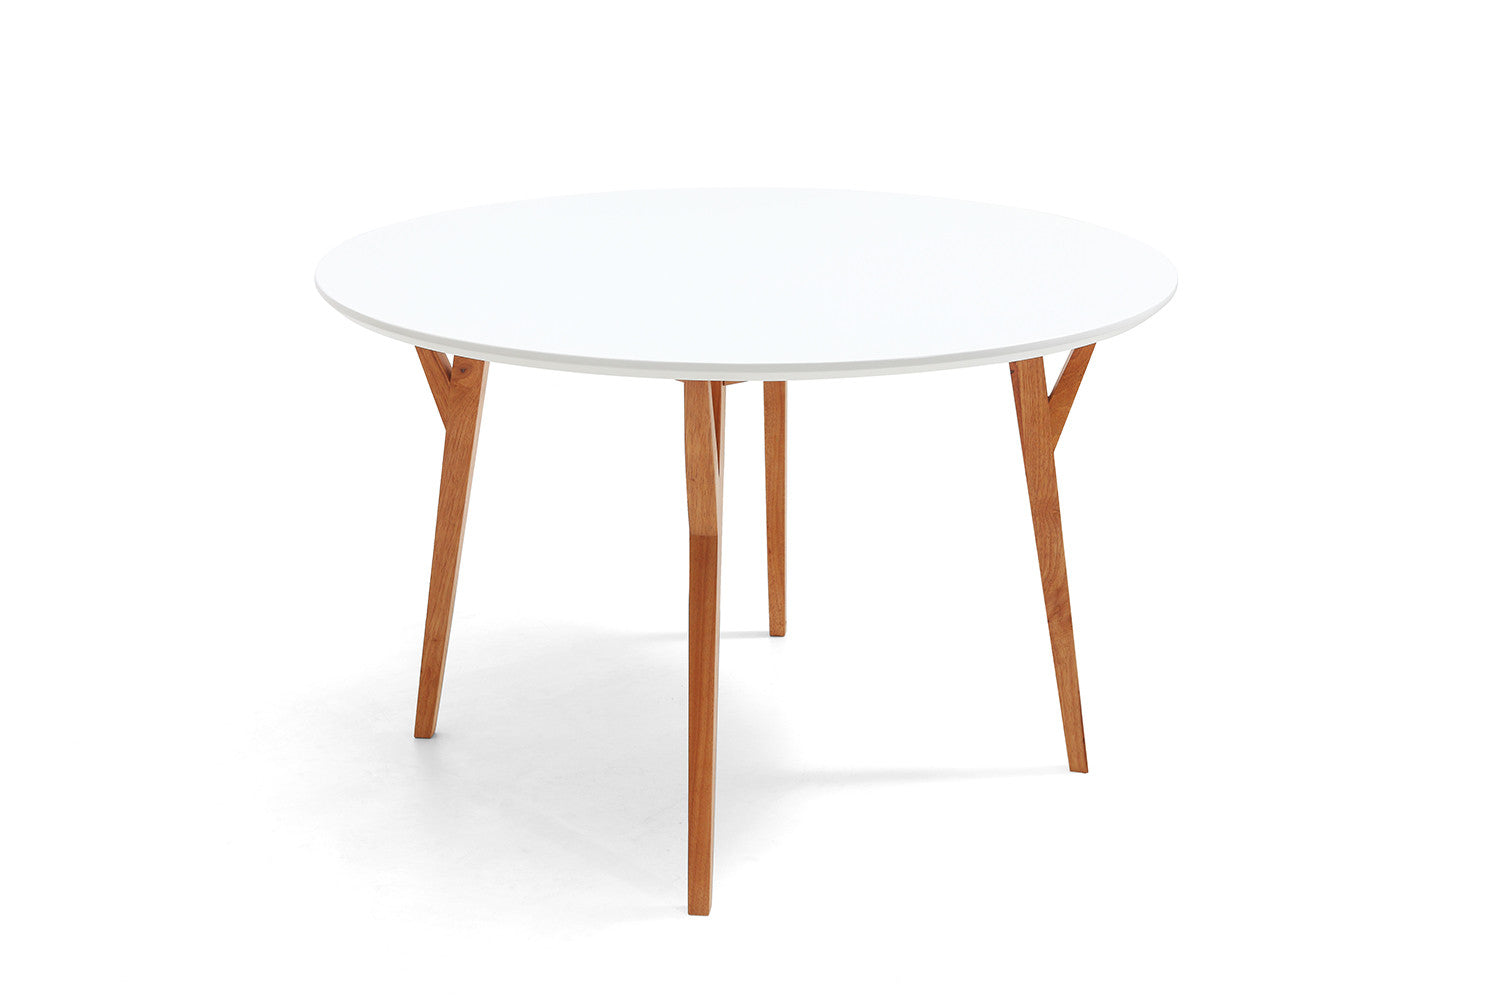 Table de salle manger ronde design scandinave moesa for Salle a manger table ronde